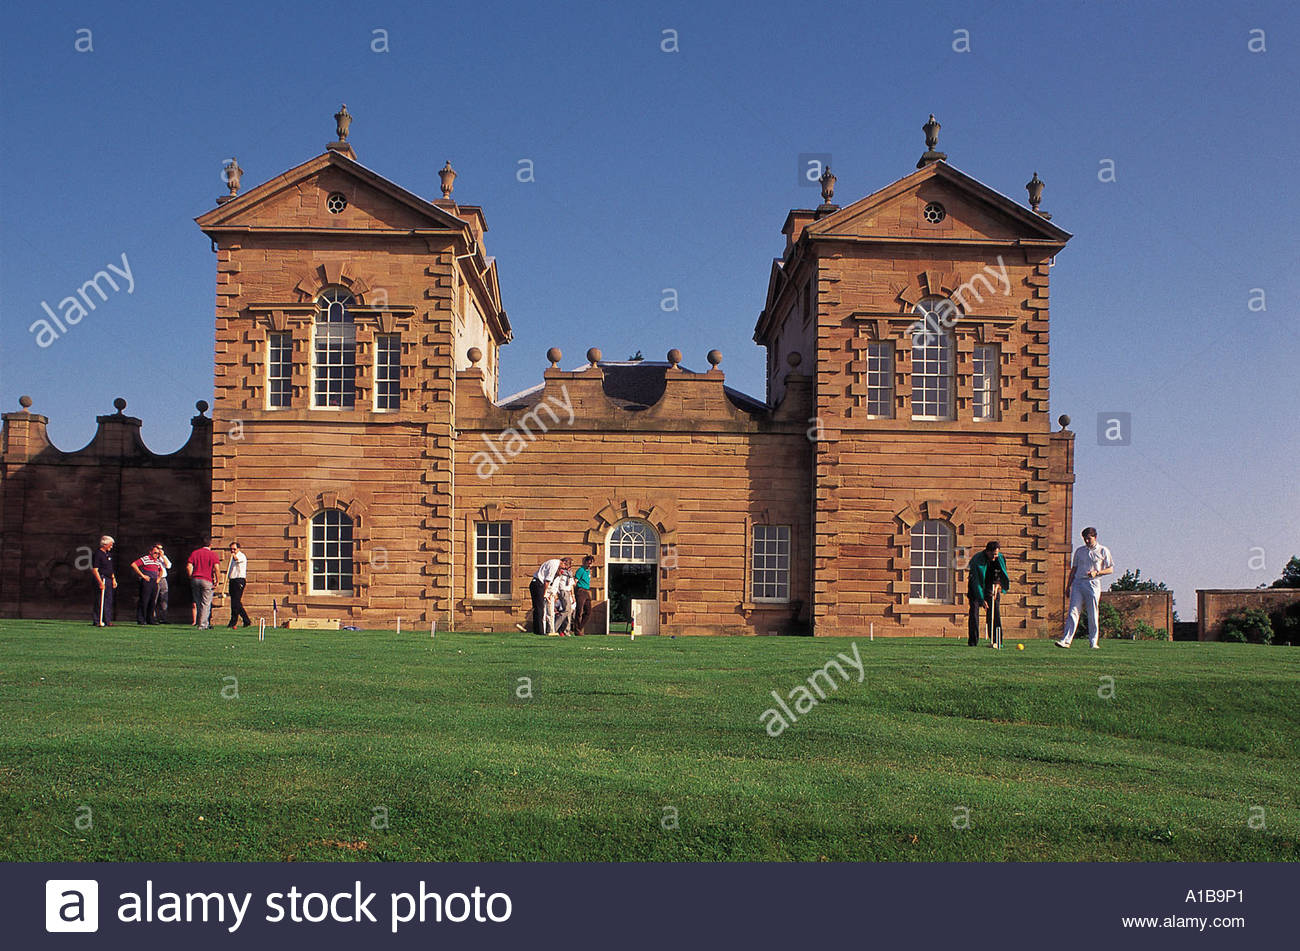 PARTICIPANTS IN A CROQUET GAME AT CHATELHERAULT A 500 ACRE COUNTRY PARK NEAR HAMILTON SOUTH LANARKSHIRE - Stock Image